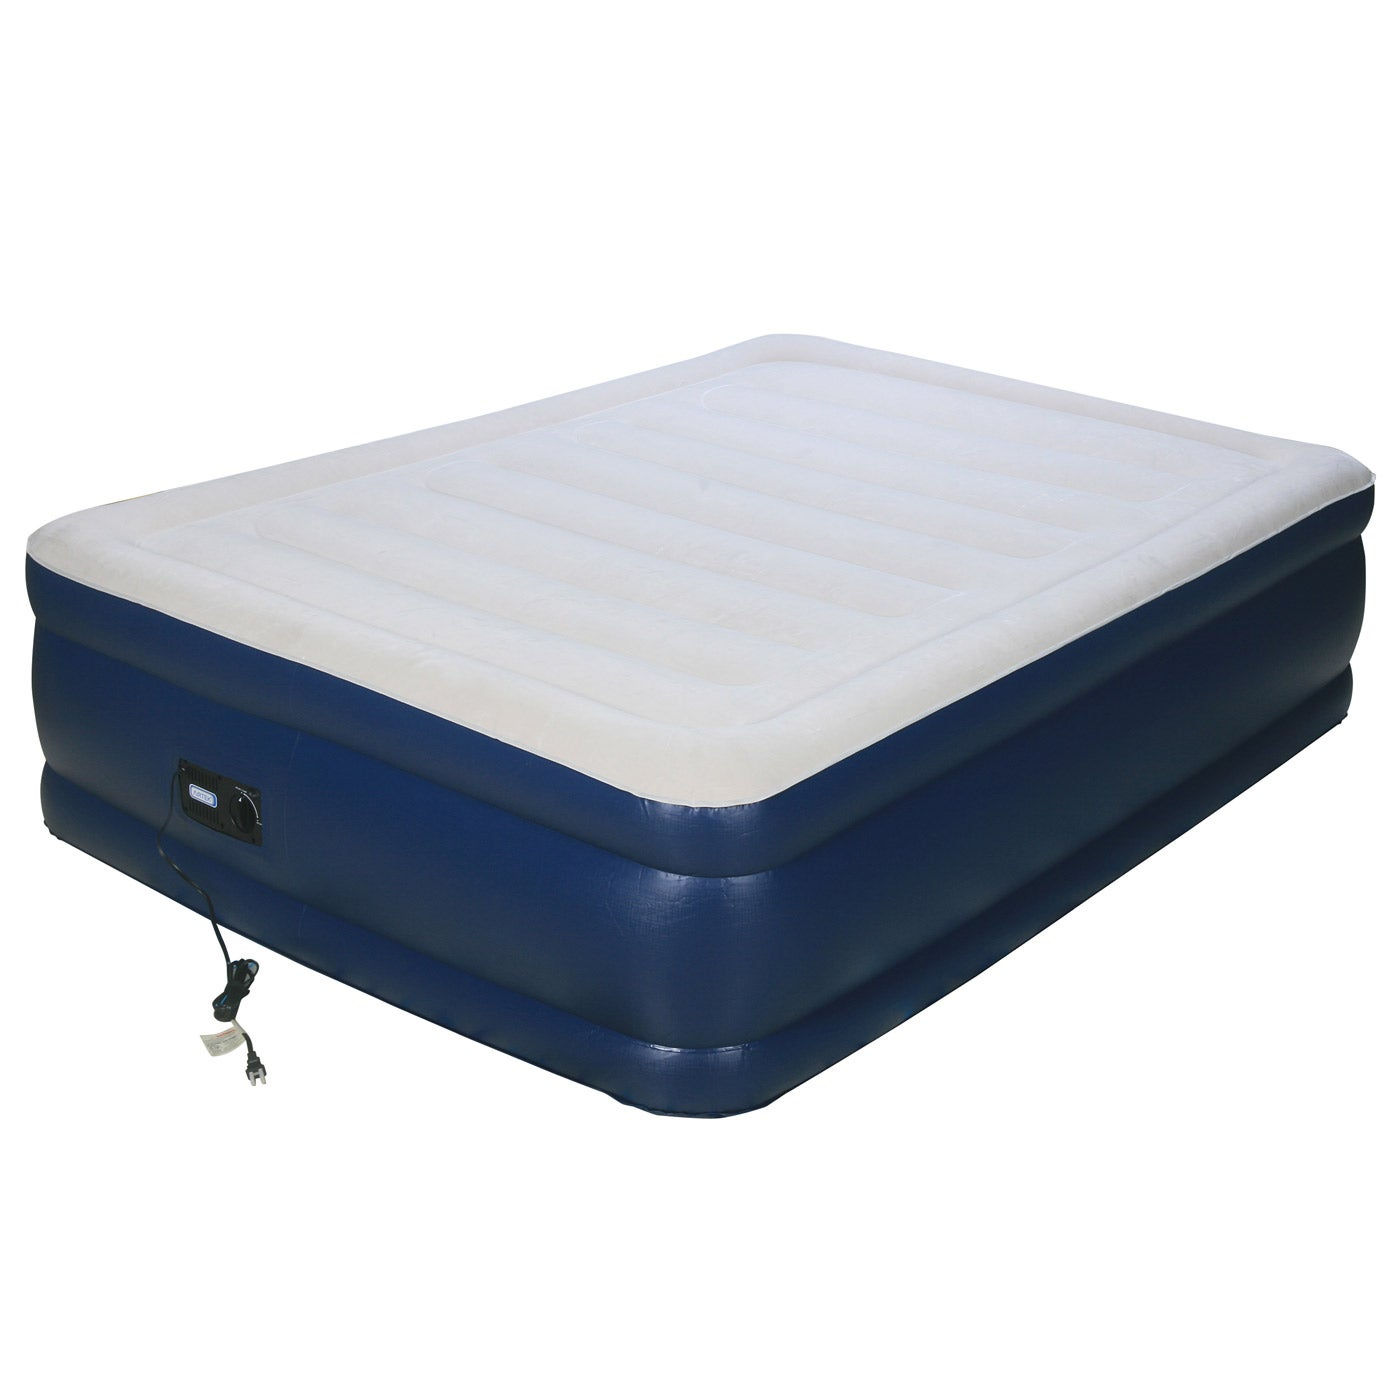 Airtek Deluxe Full size Raised Flocked Air Bed With Built in Pump